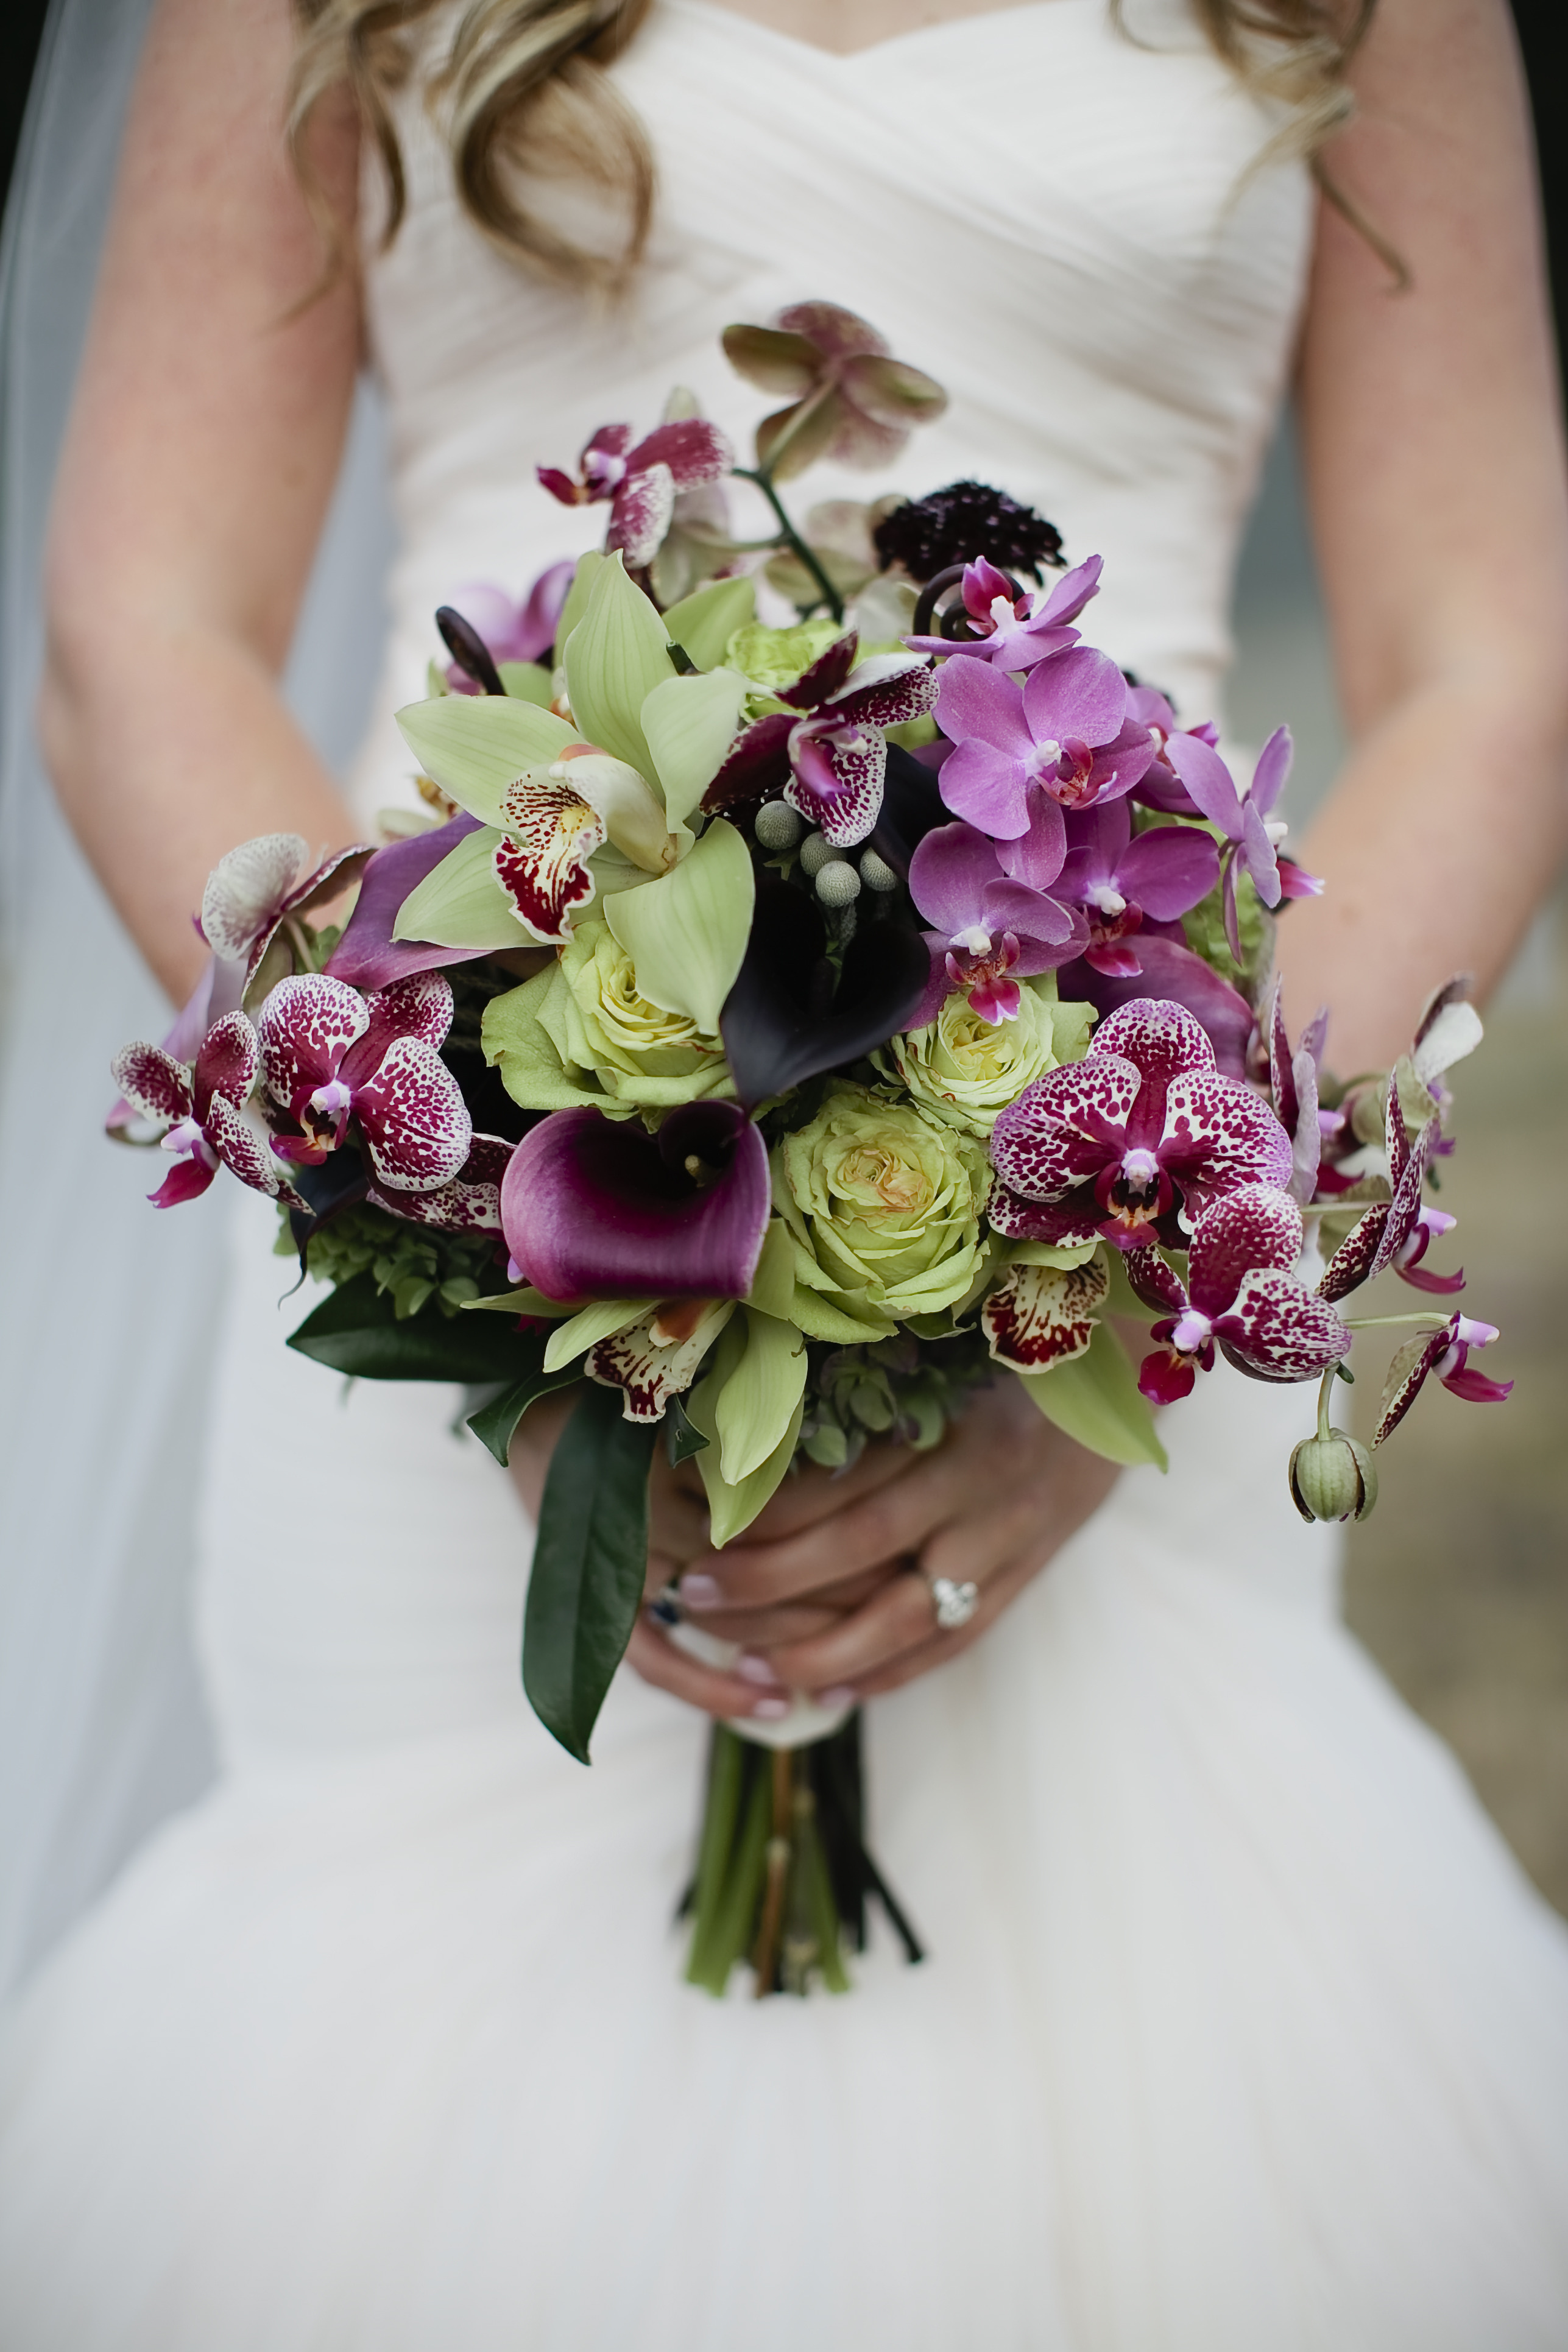 wedding bouquets, bridal, green and purple orchids orchid bouquet 10 Amazing Orchid Bouquets 1baa30dc37e88d64ac644465fd10249b